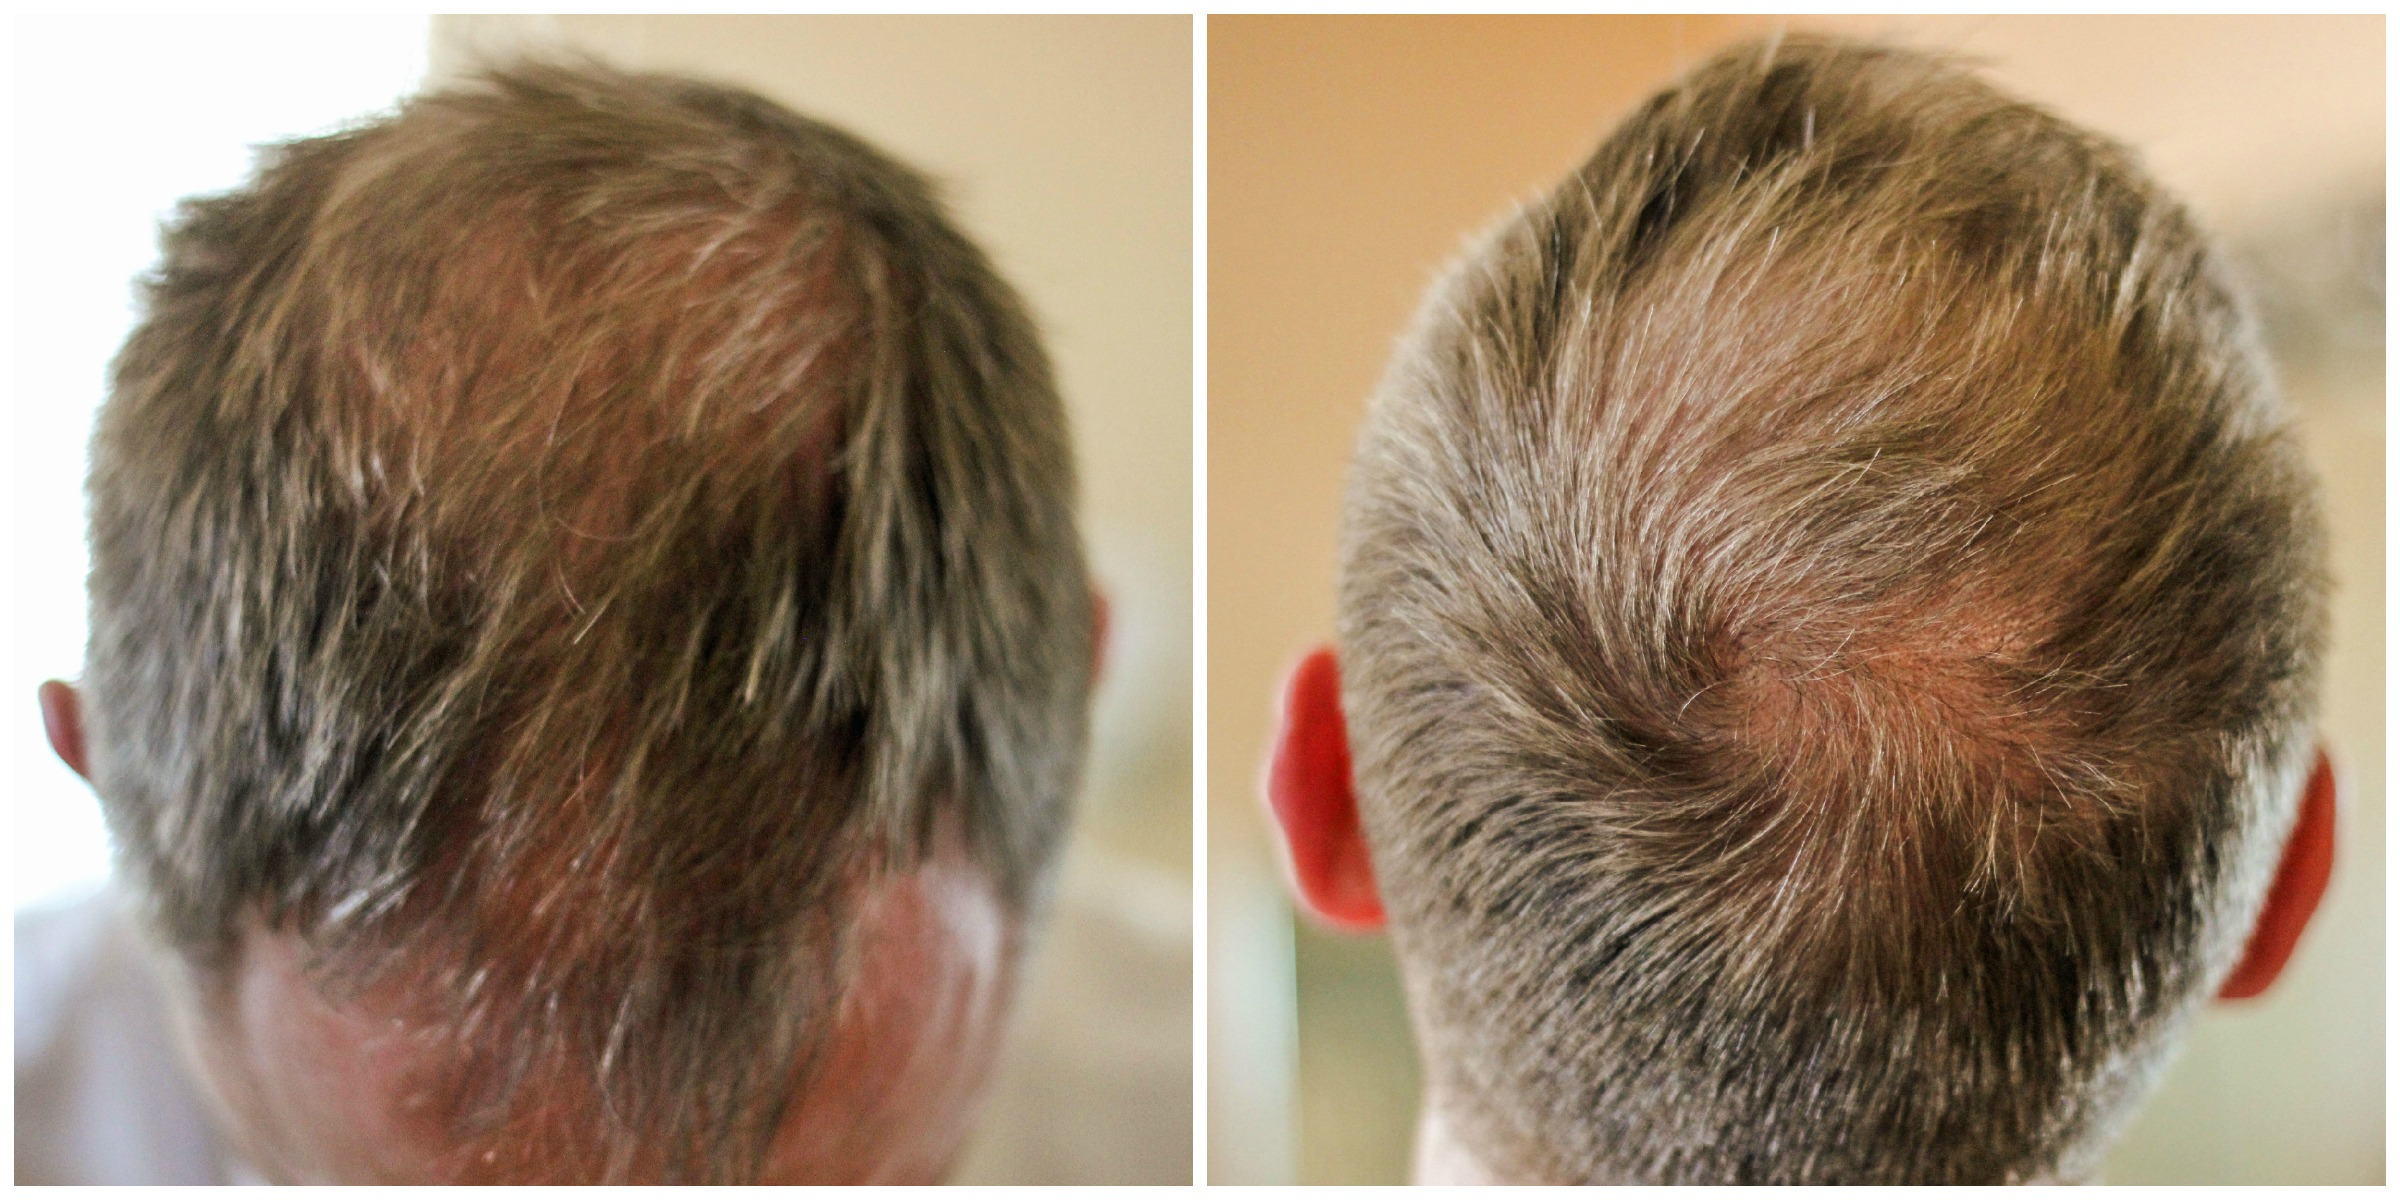 hair thinning and hair loss: what's a man to do? - clever housewife